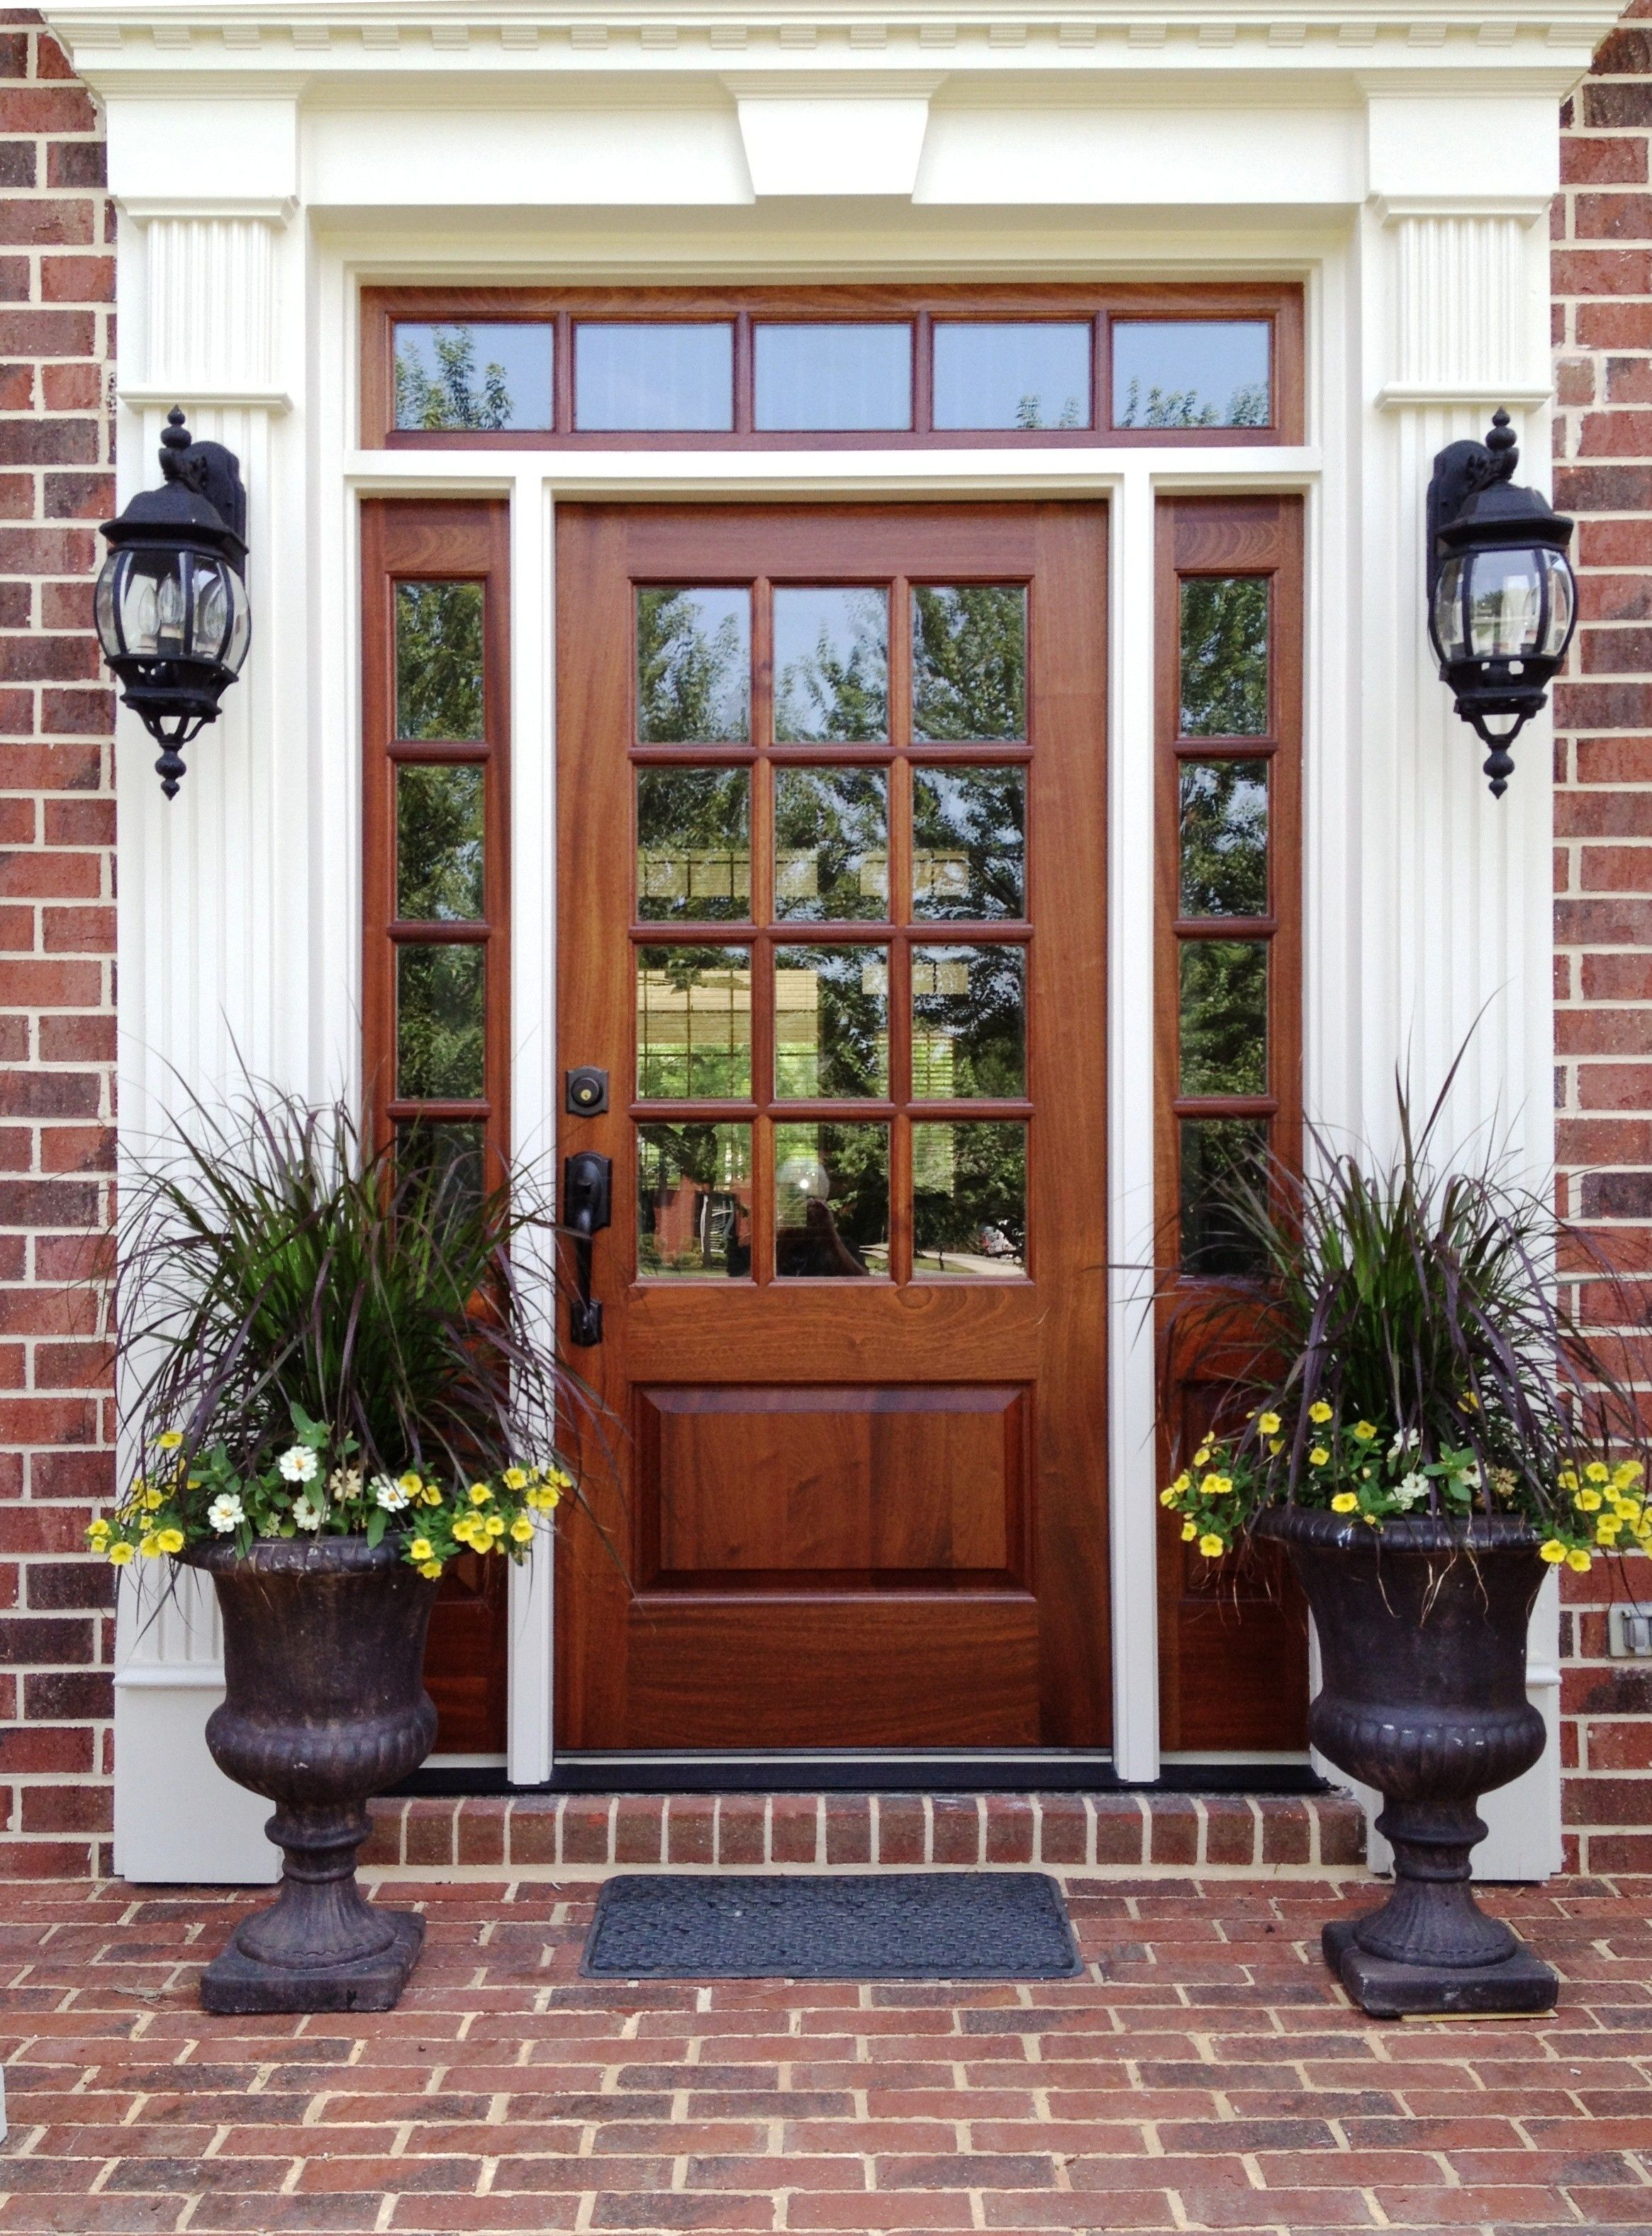 Best Color For Front Door On Brick House Part - 24: Best Door Colors For Red Brick Home - Google Search